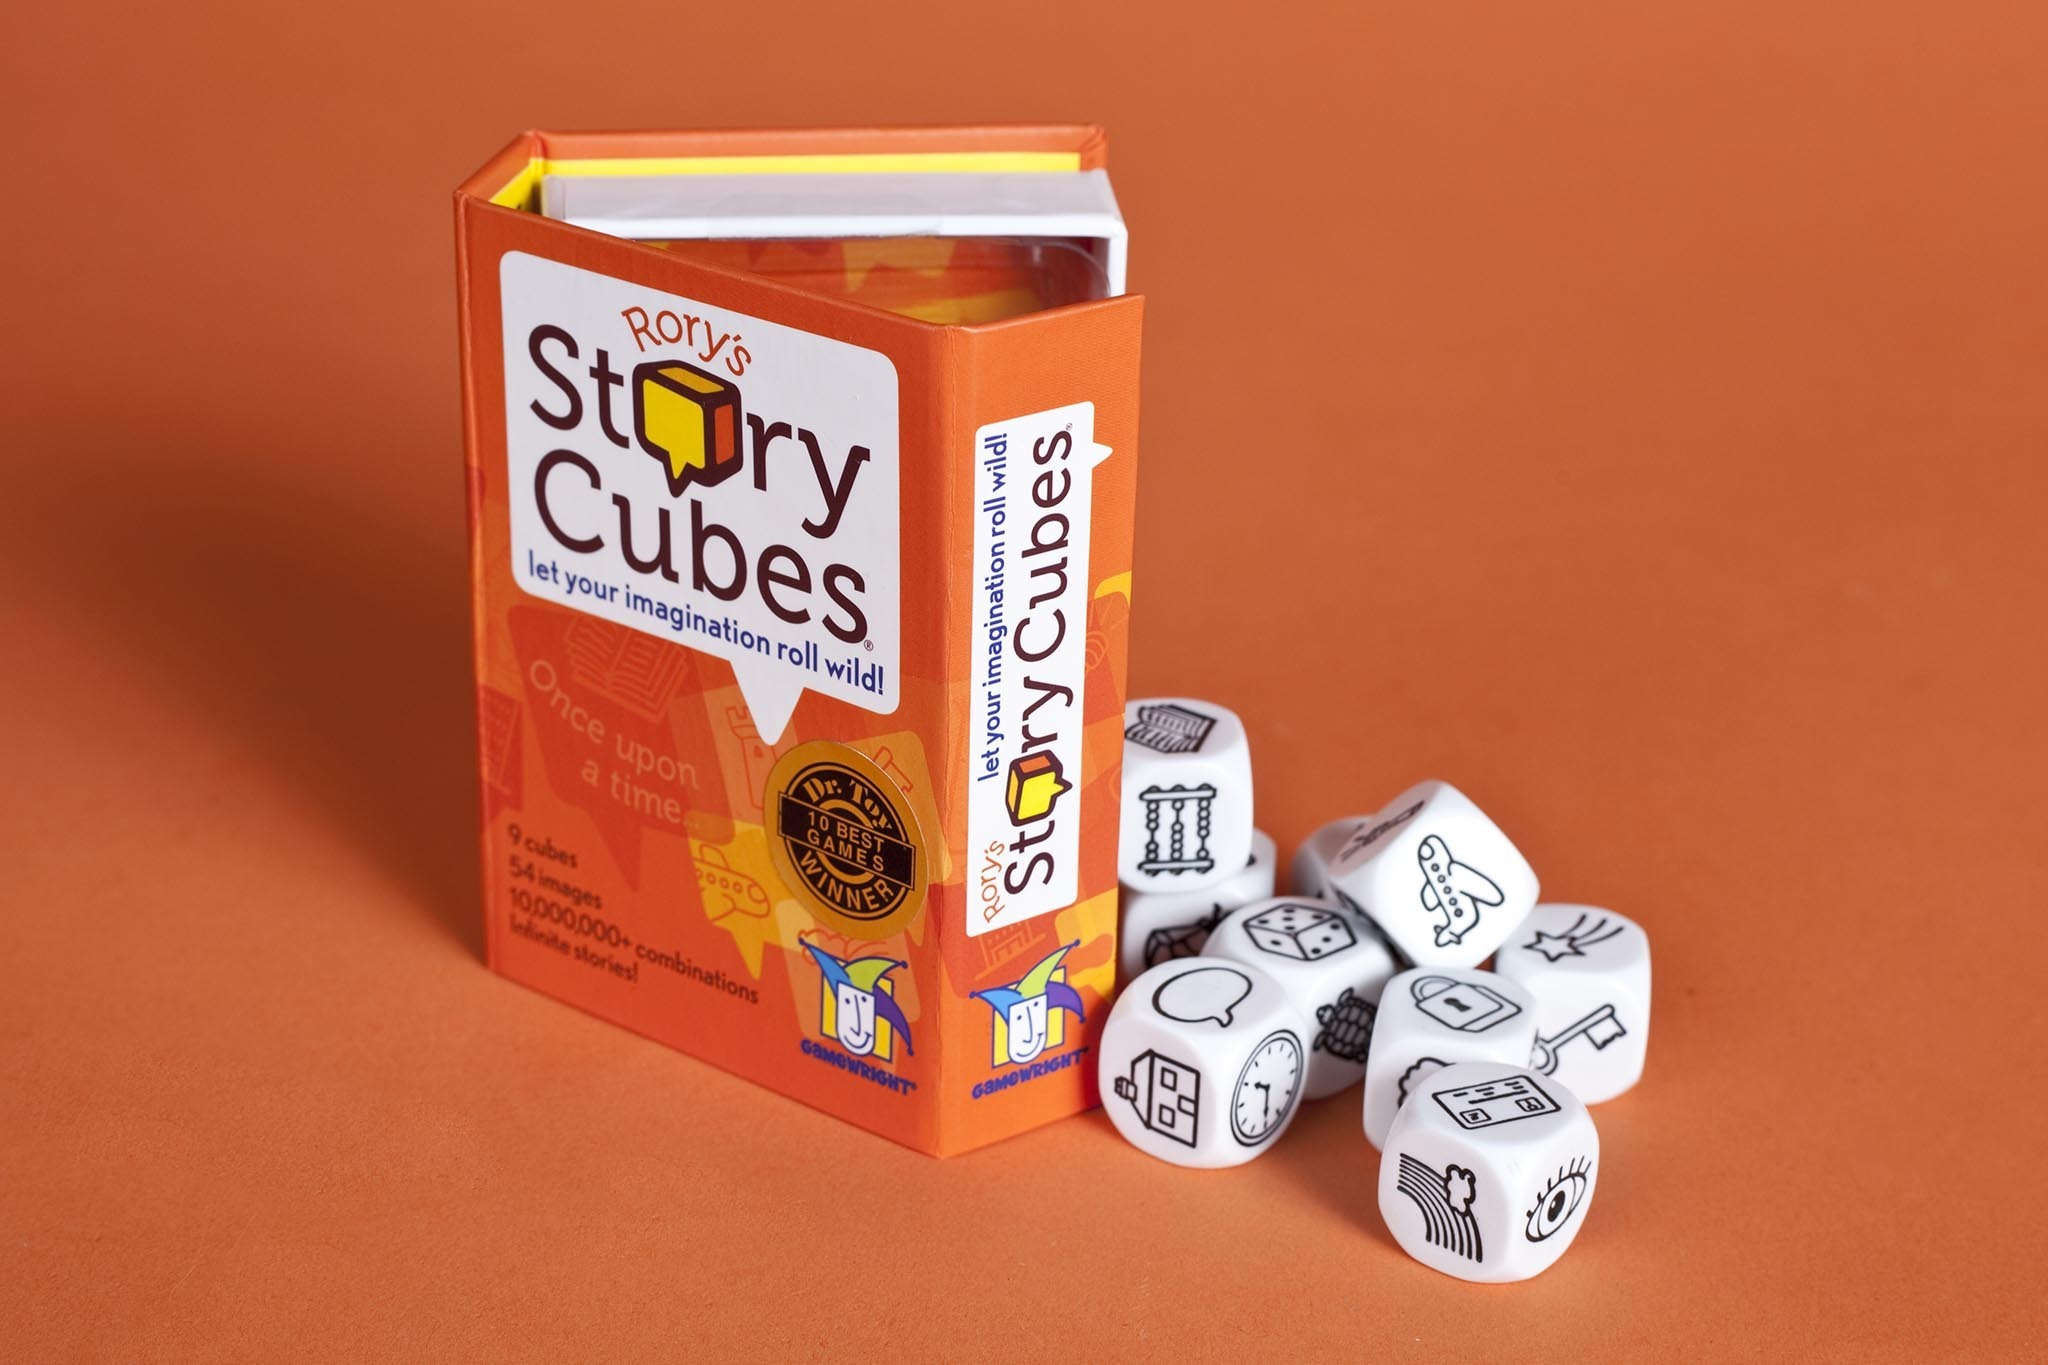 Holiday gift guide: Stocking stuffers for kids (2012)